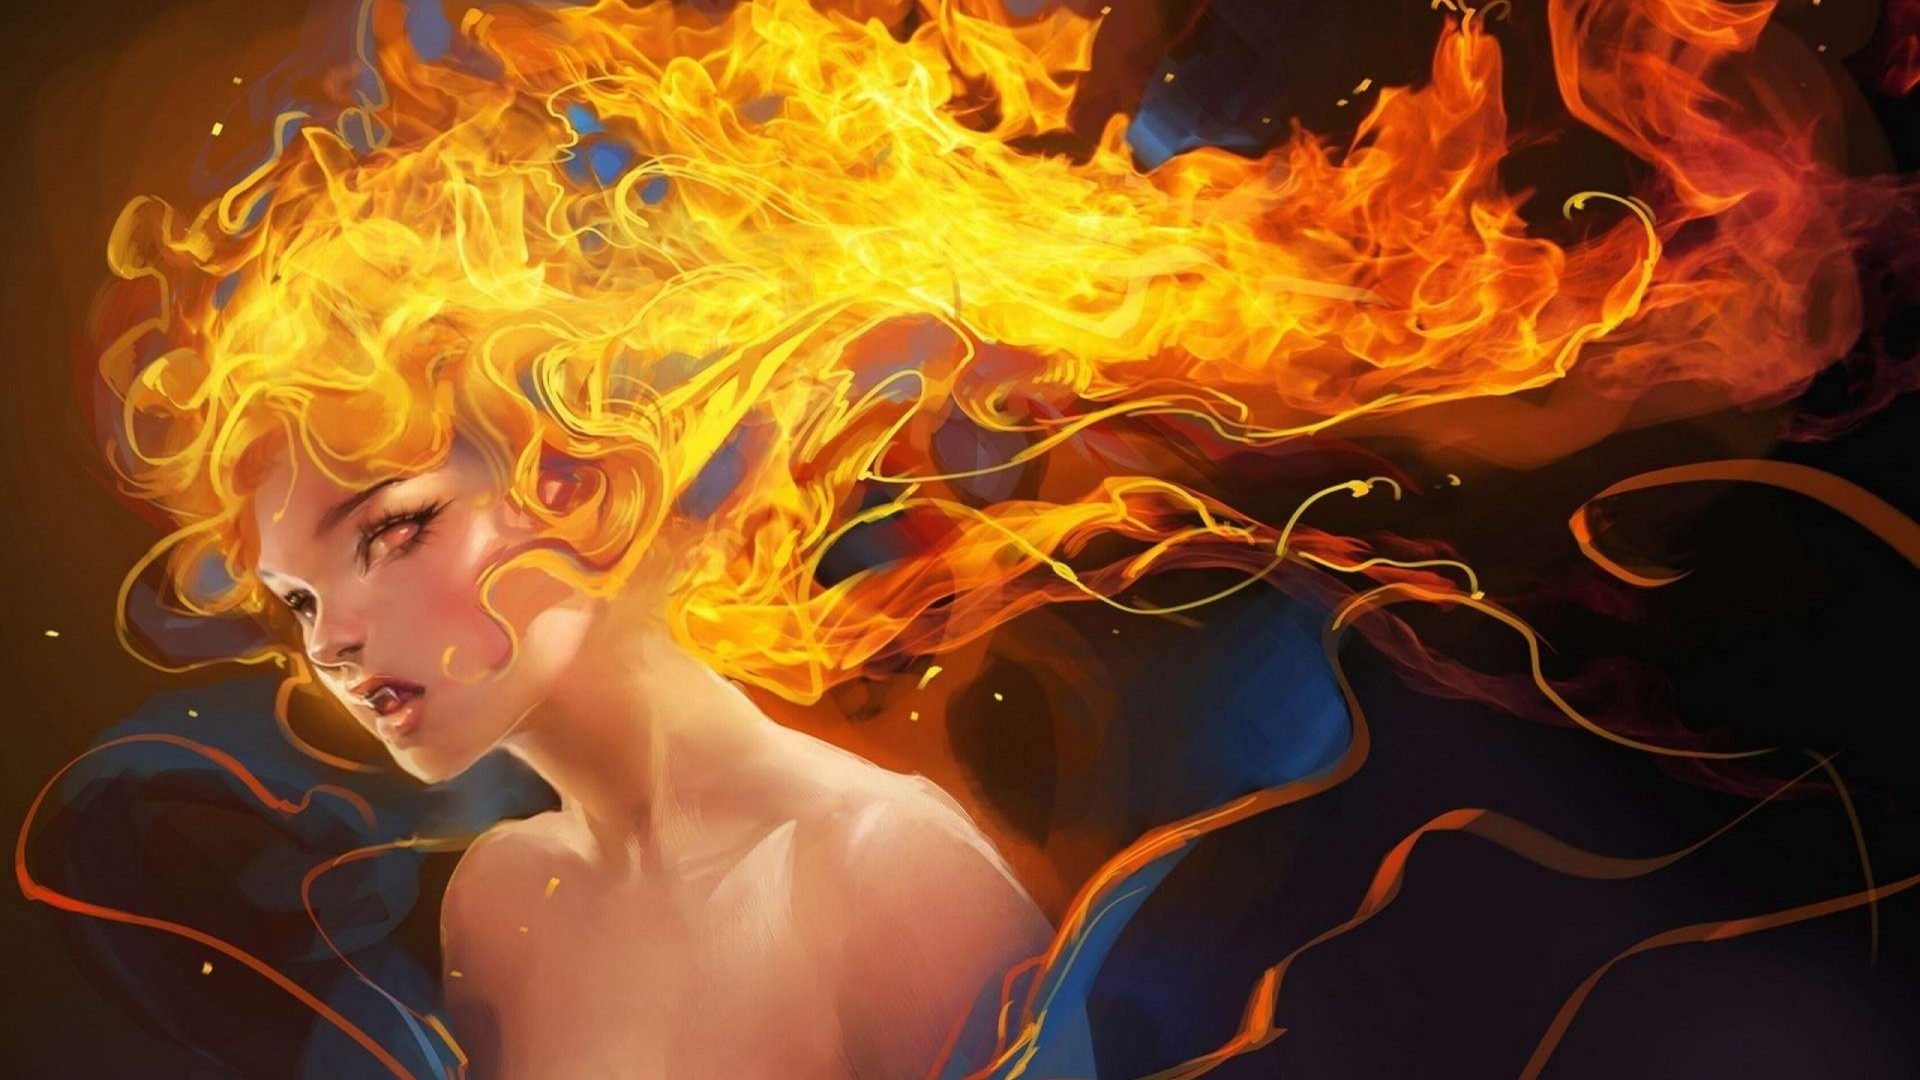 fantasy-girl-fire-long-hair-boobs-beautiful-yellow-torture-1920x1080